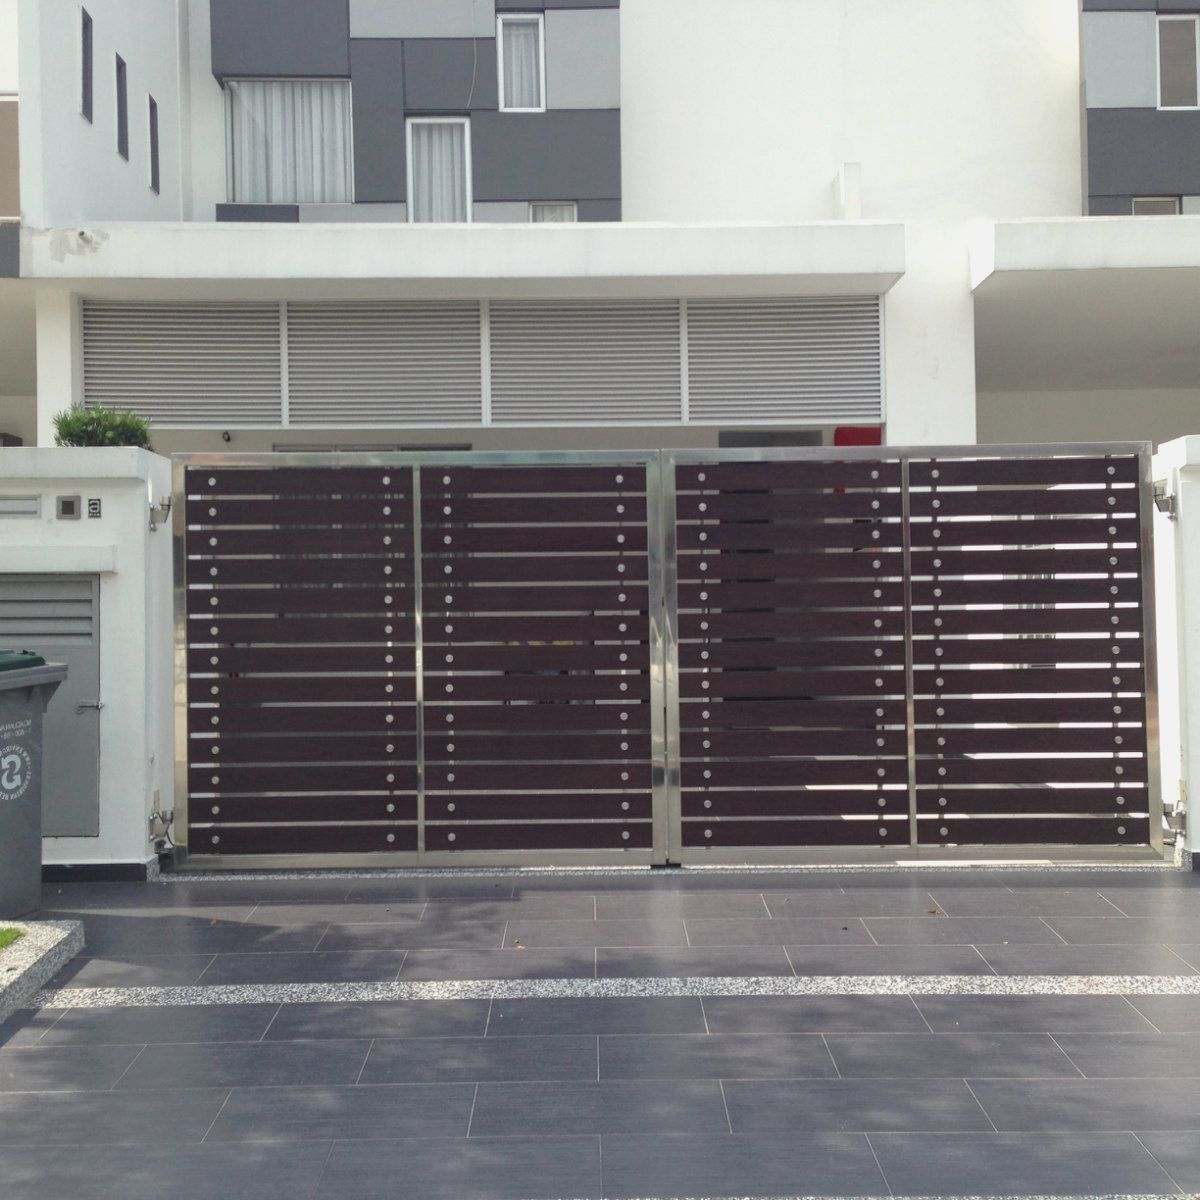 Main gate design in stainless steel stainless steel main for Main gate door design